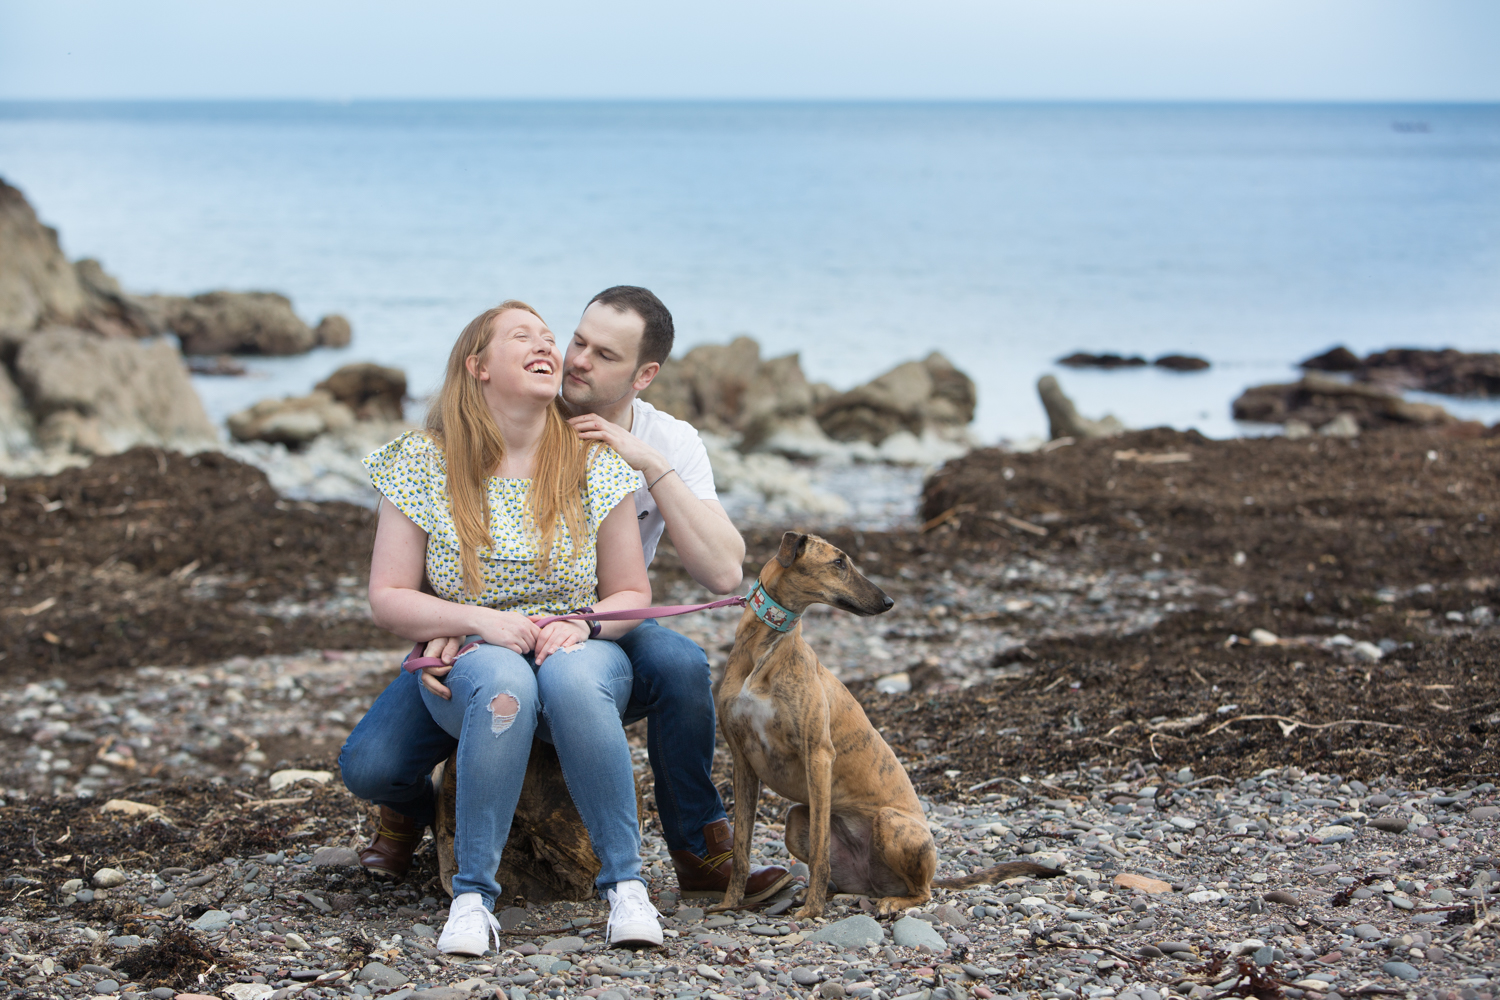 PICTORIAL_BERWICK_pre-wedding-family-couple-shoot-beach-coldingham-bay-birthday-dogs-grandparents-0741.jpg